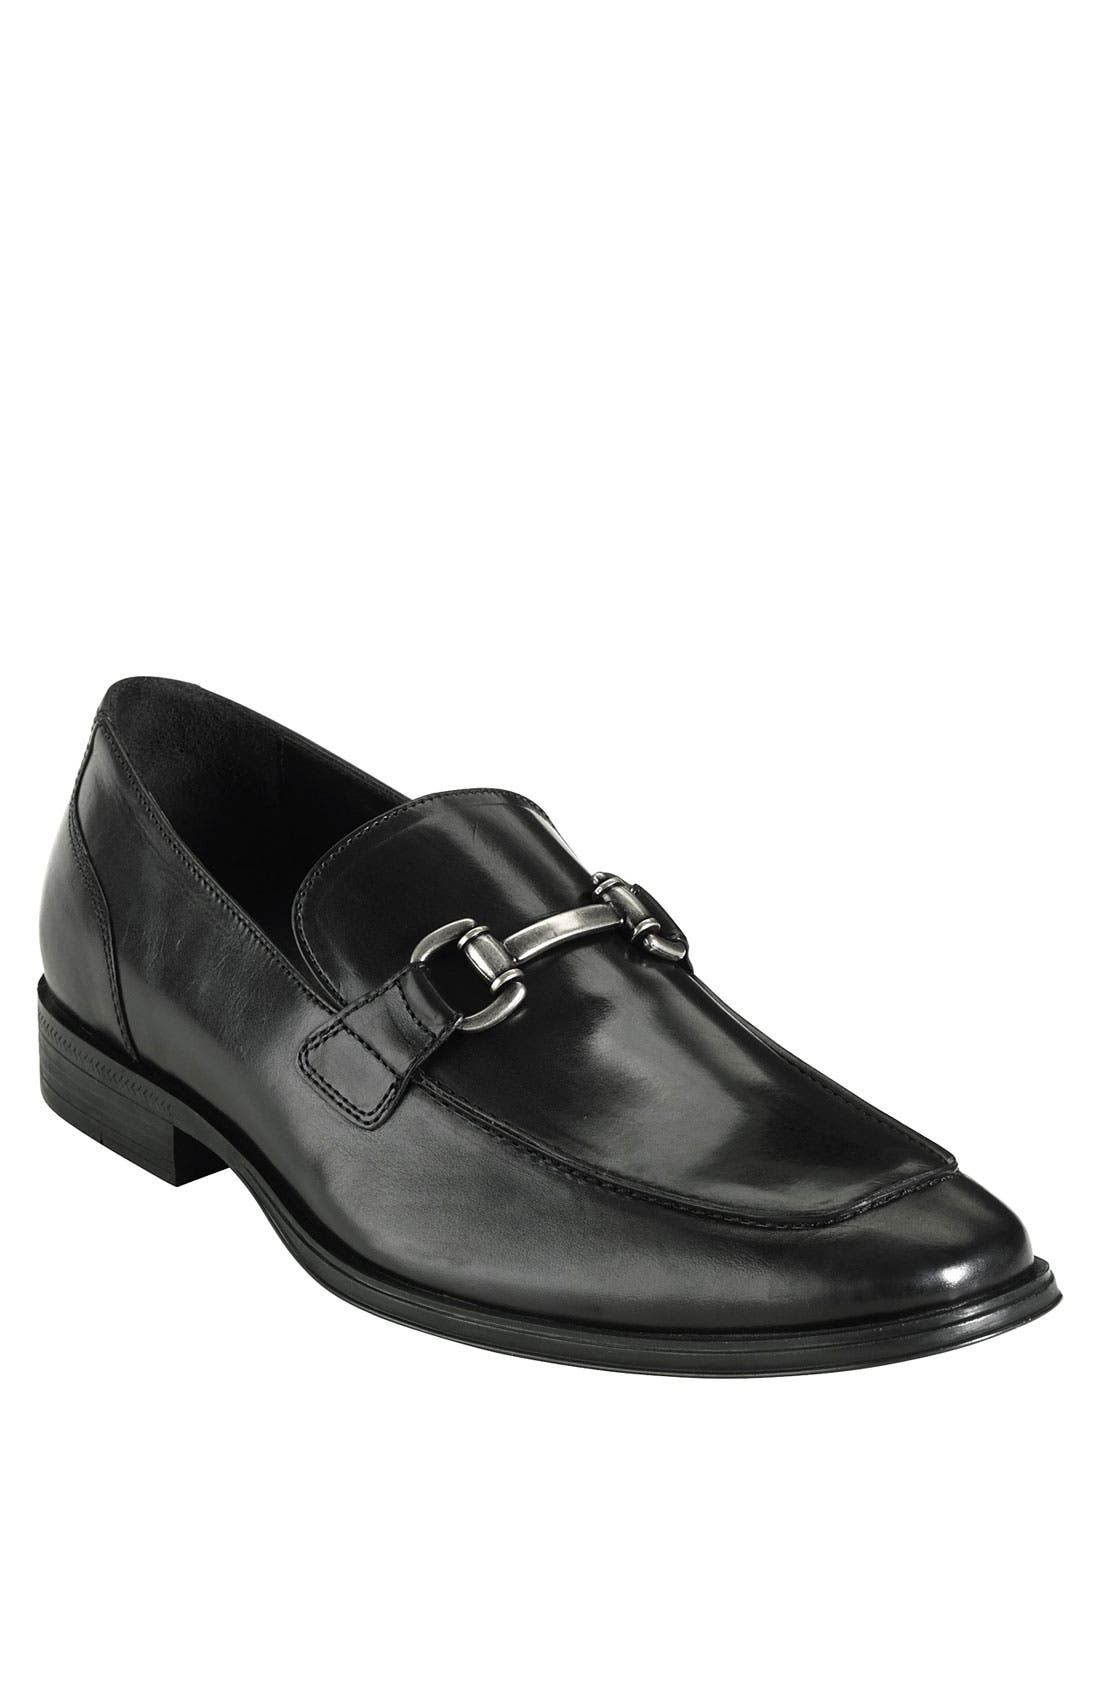 Main Image - Cole Haan 'Air Adams' Loafer (Online Only)